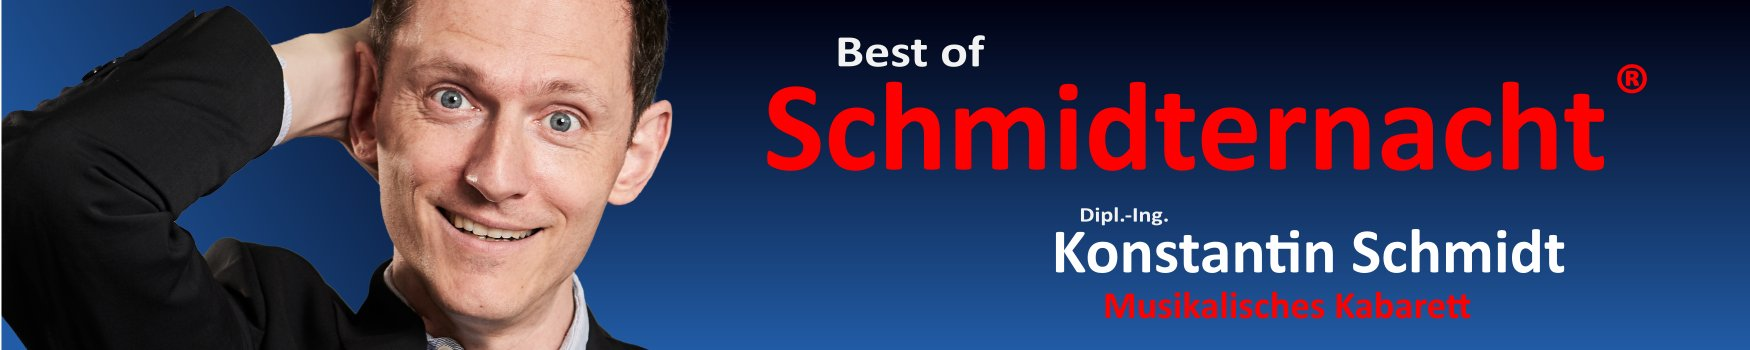 Best of Schmidternacht